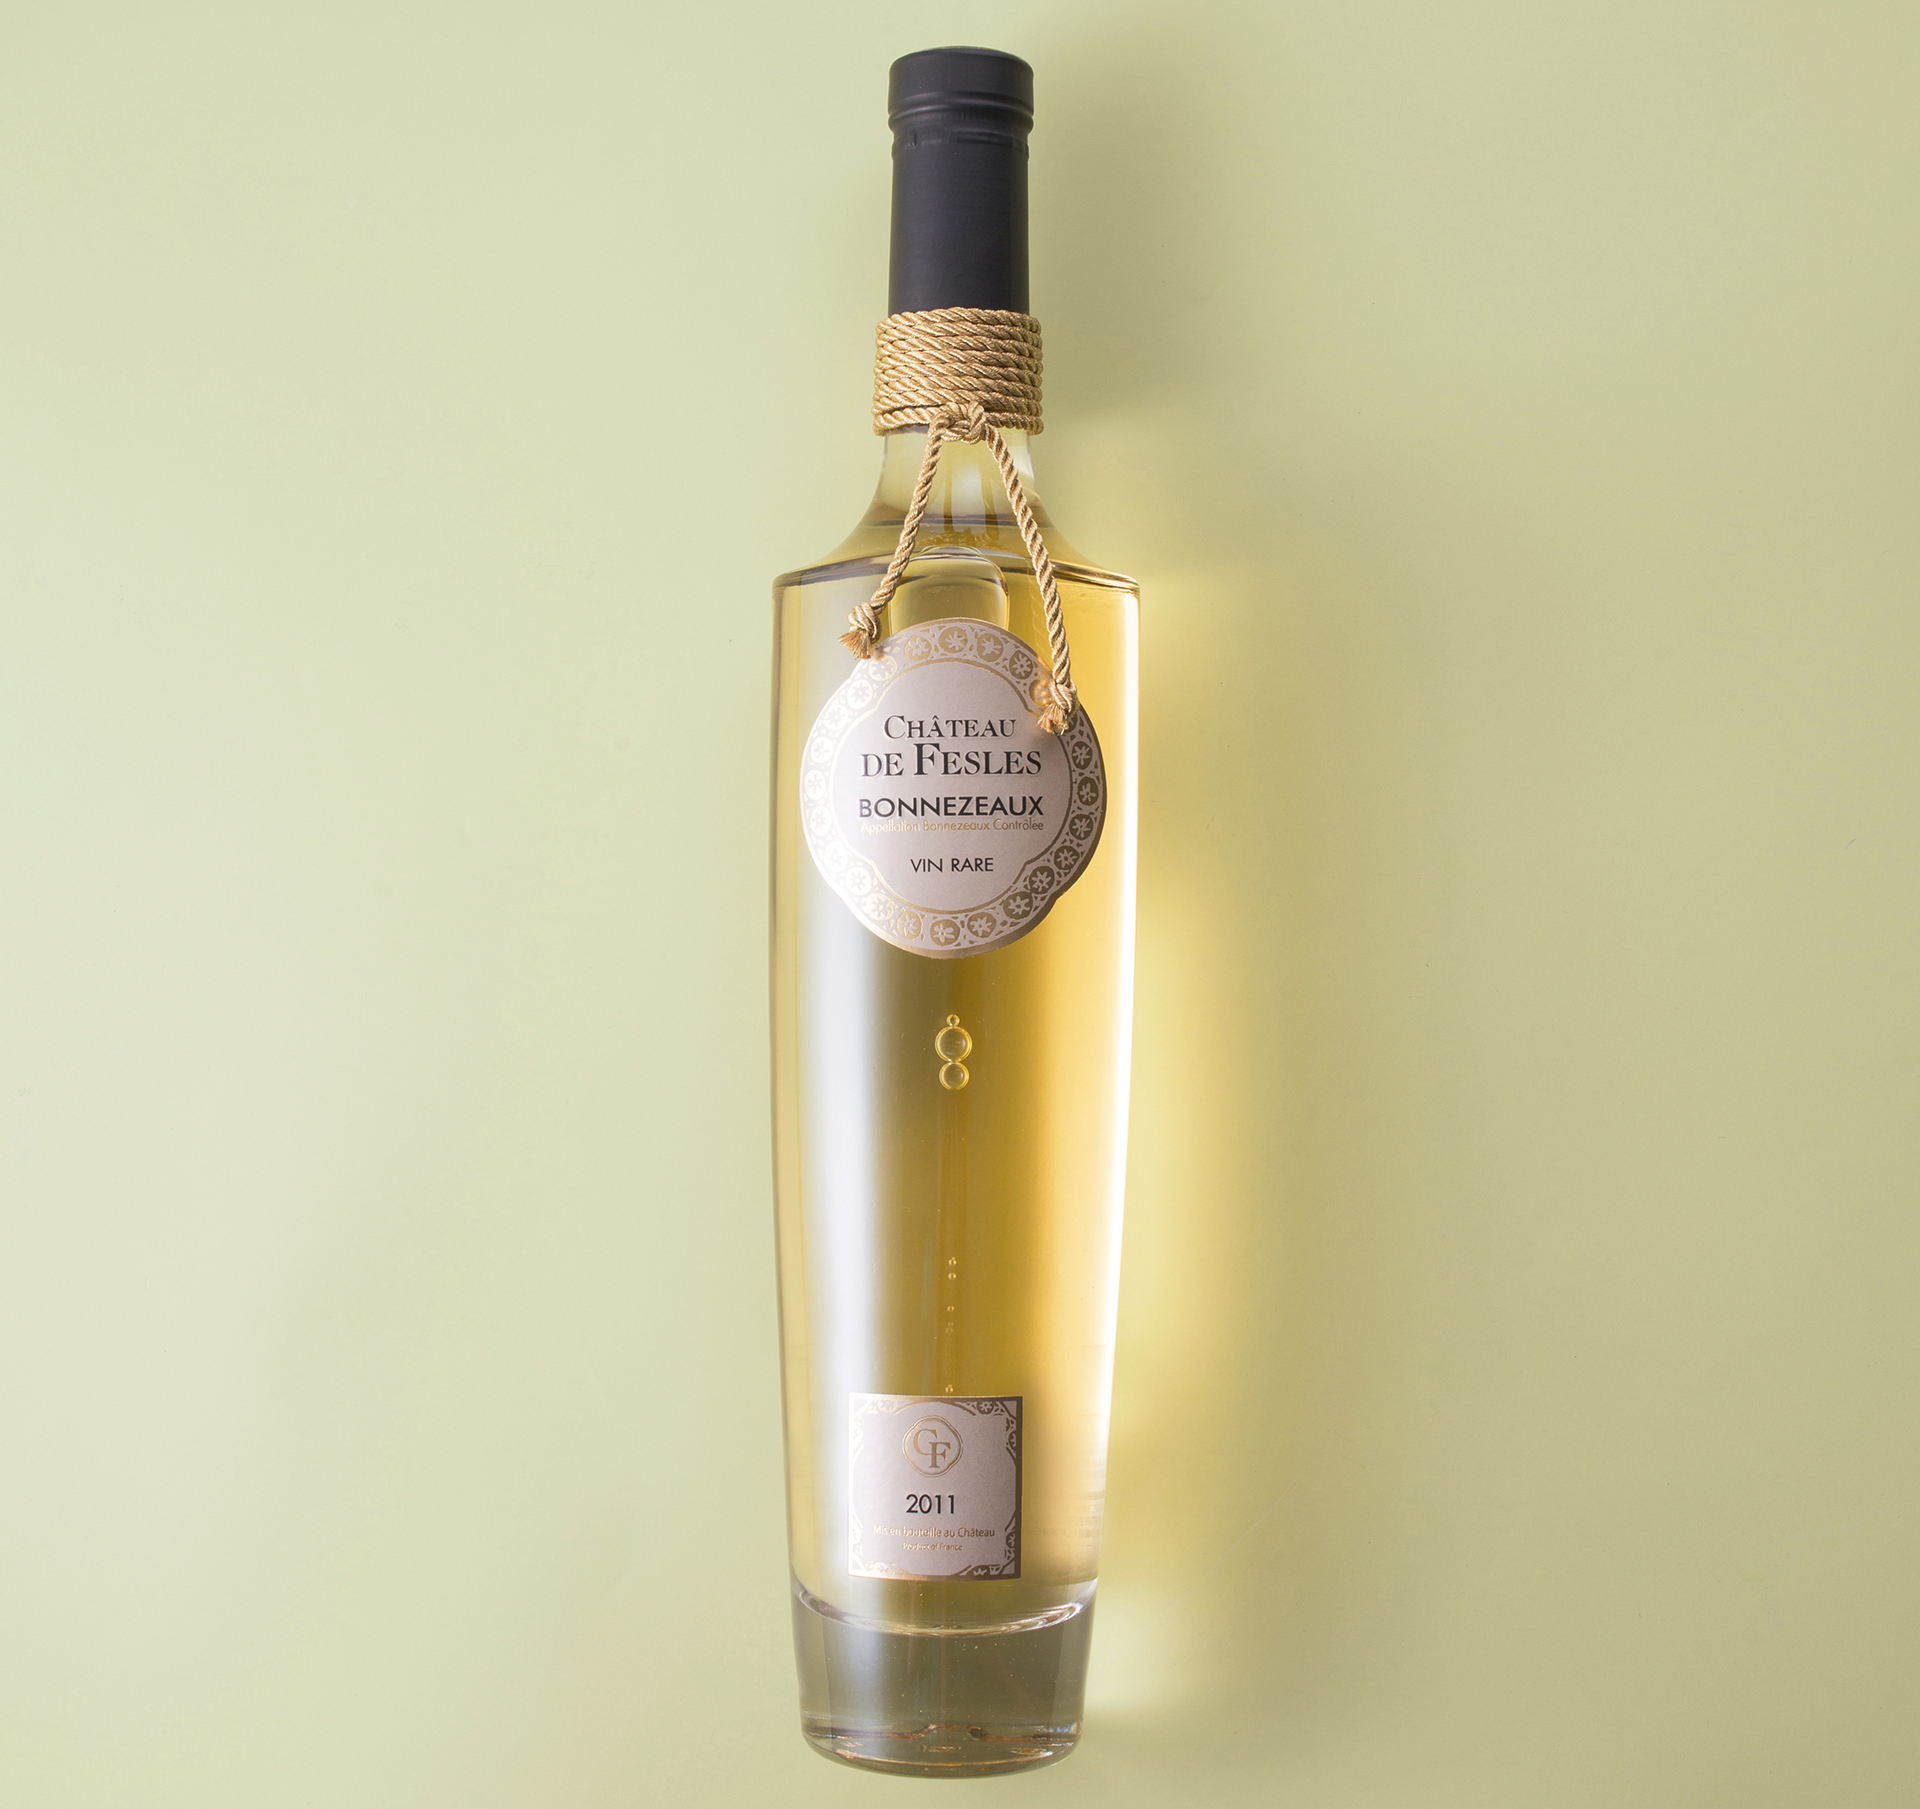 A bottle of botrytized wine from the Loire Valley